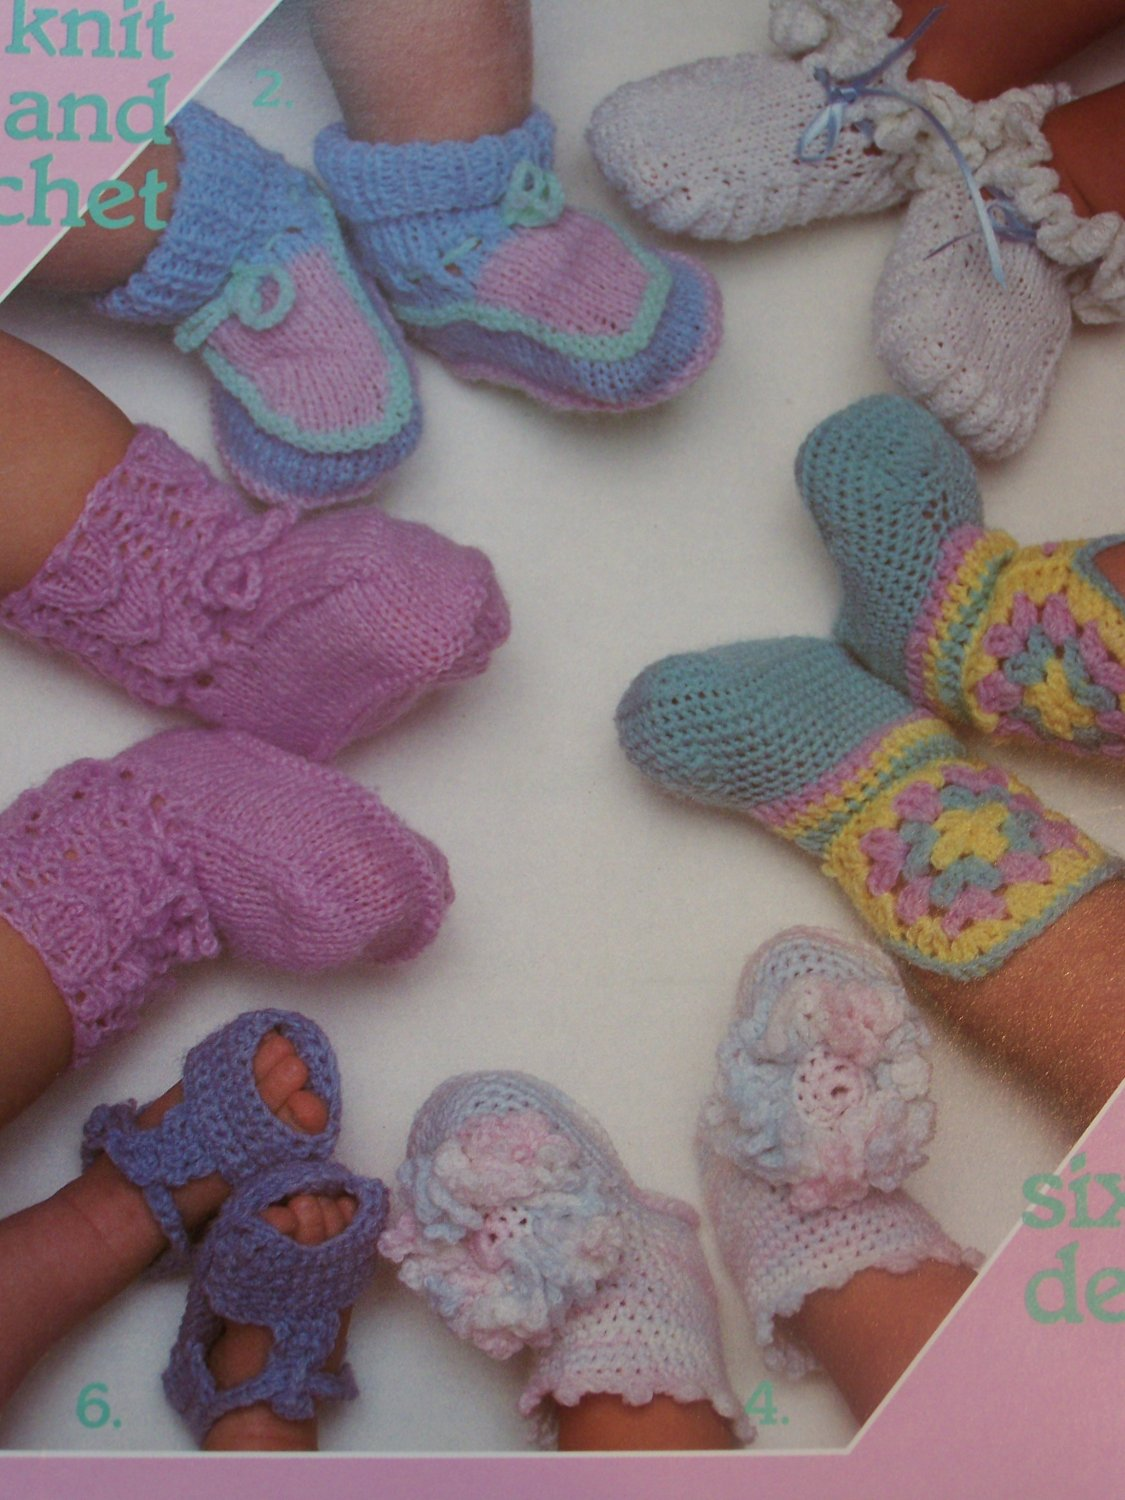 Free Knitting Patterns For Baby Sandals : Baby Sandals Knitting Pattern Free